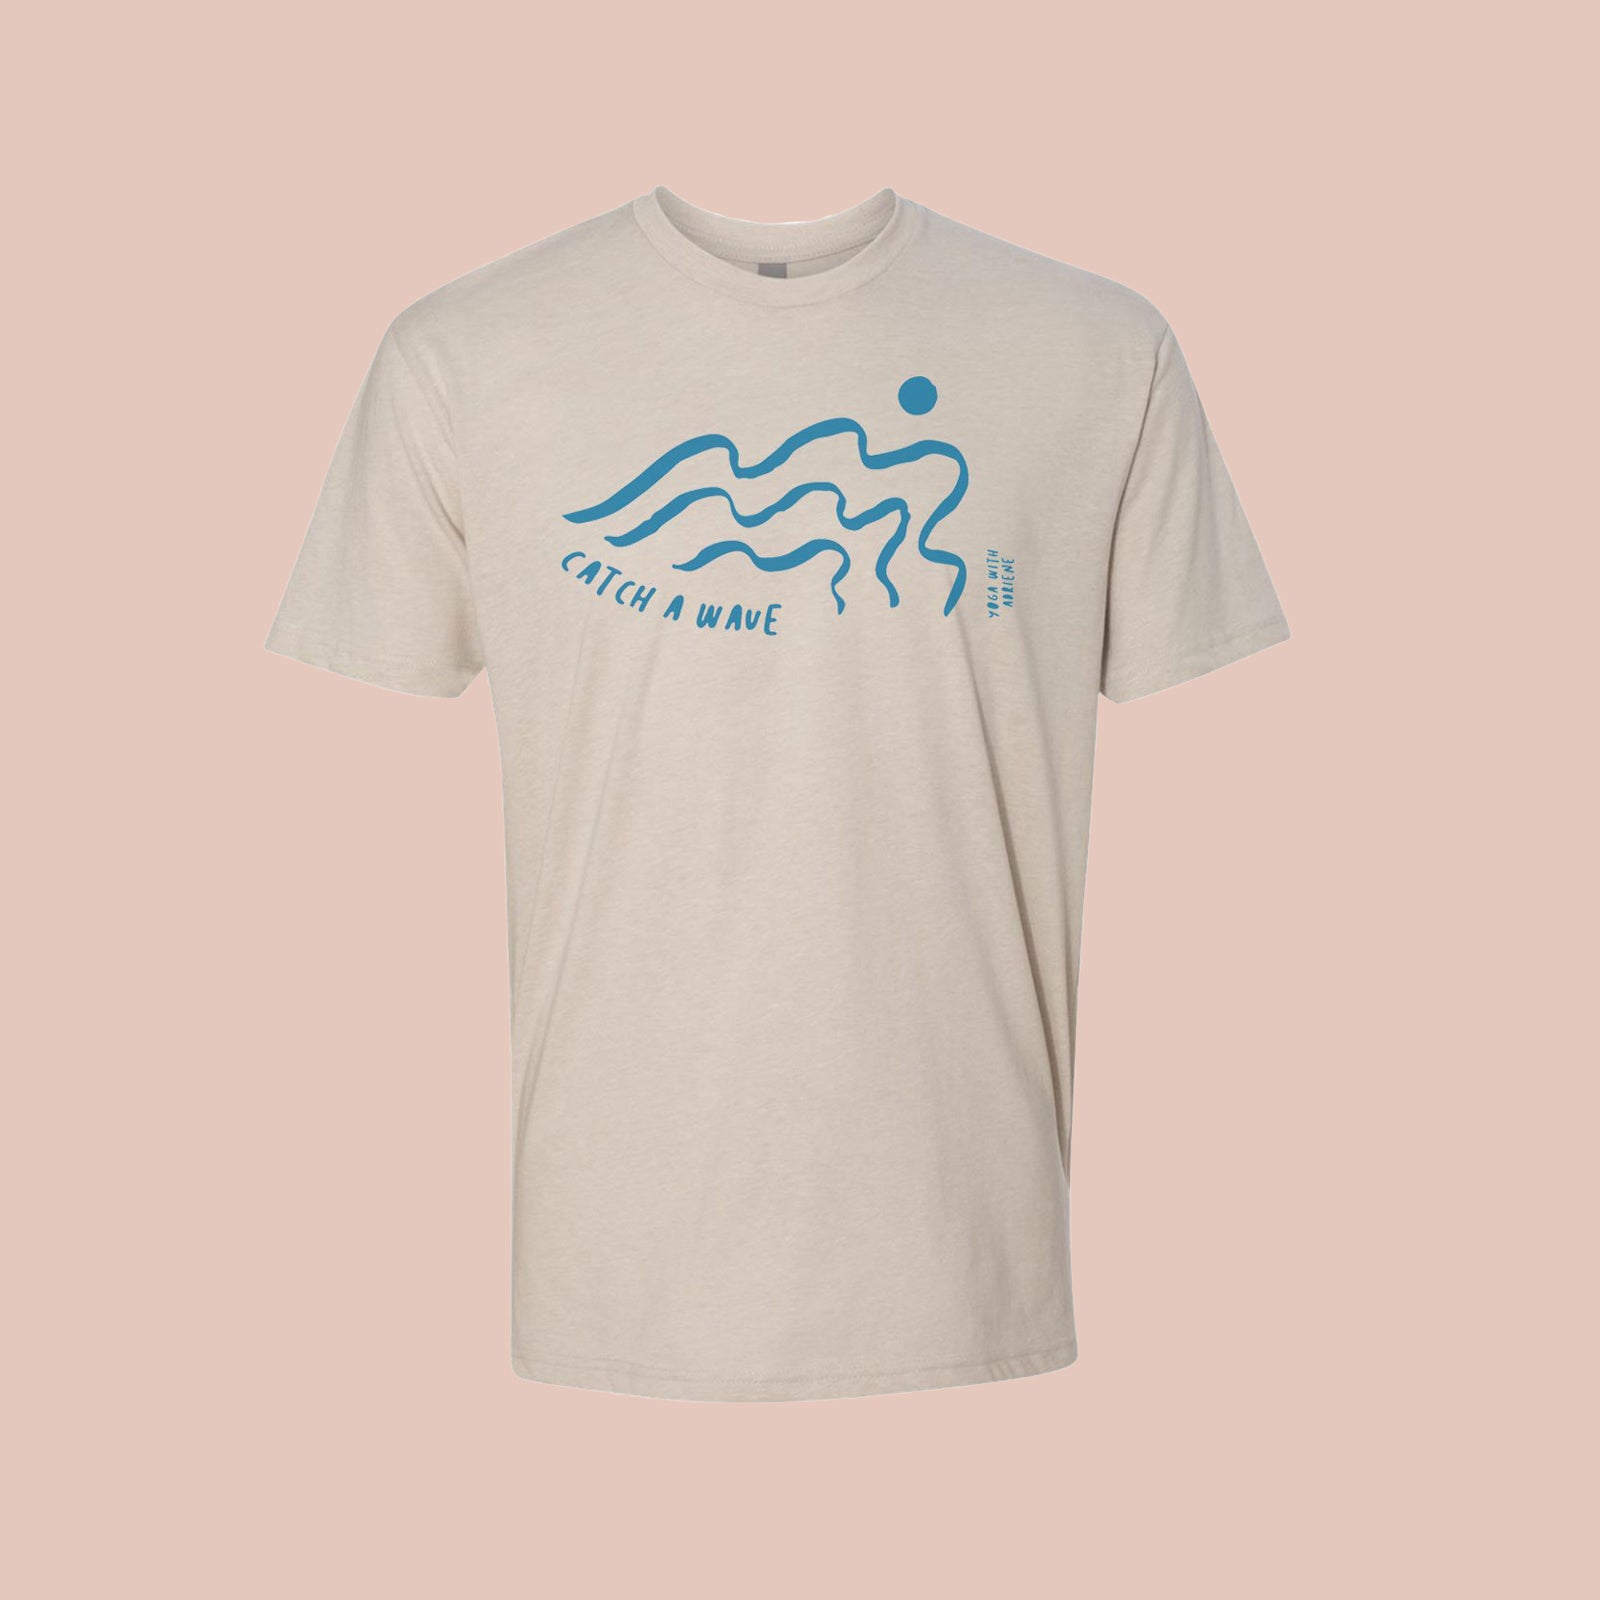 Live Event Leftovers - Catch A Wave Tee